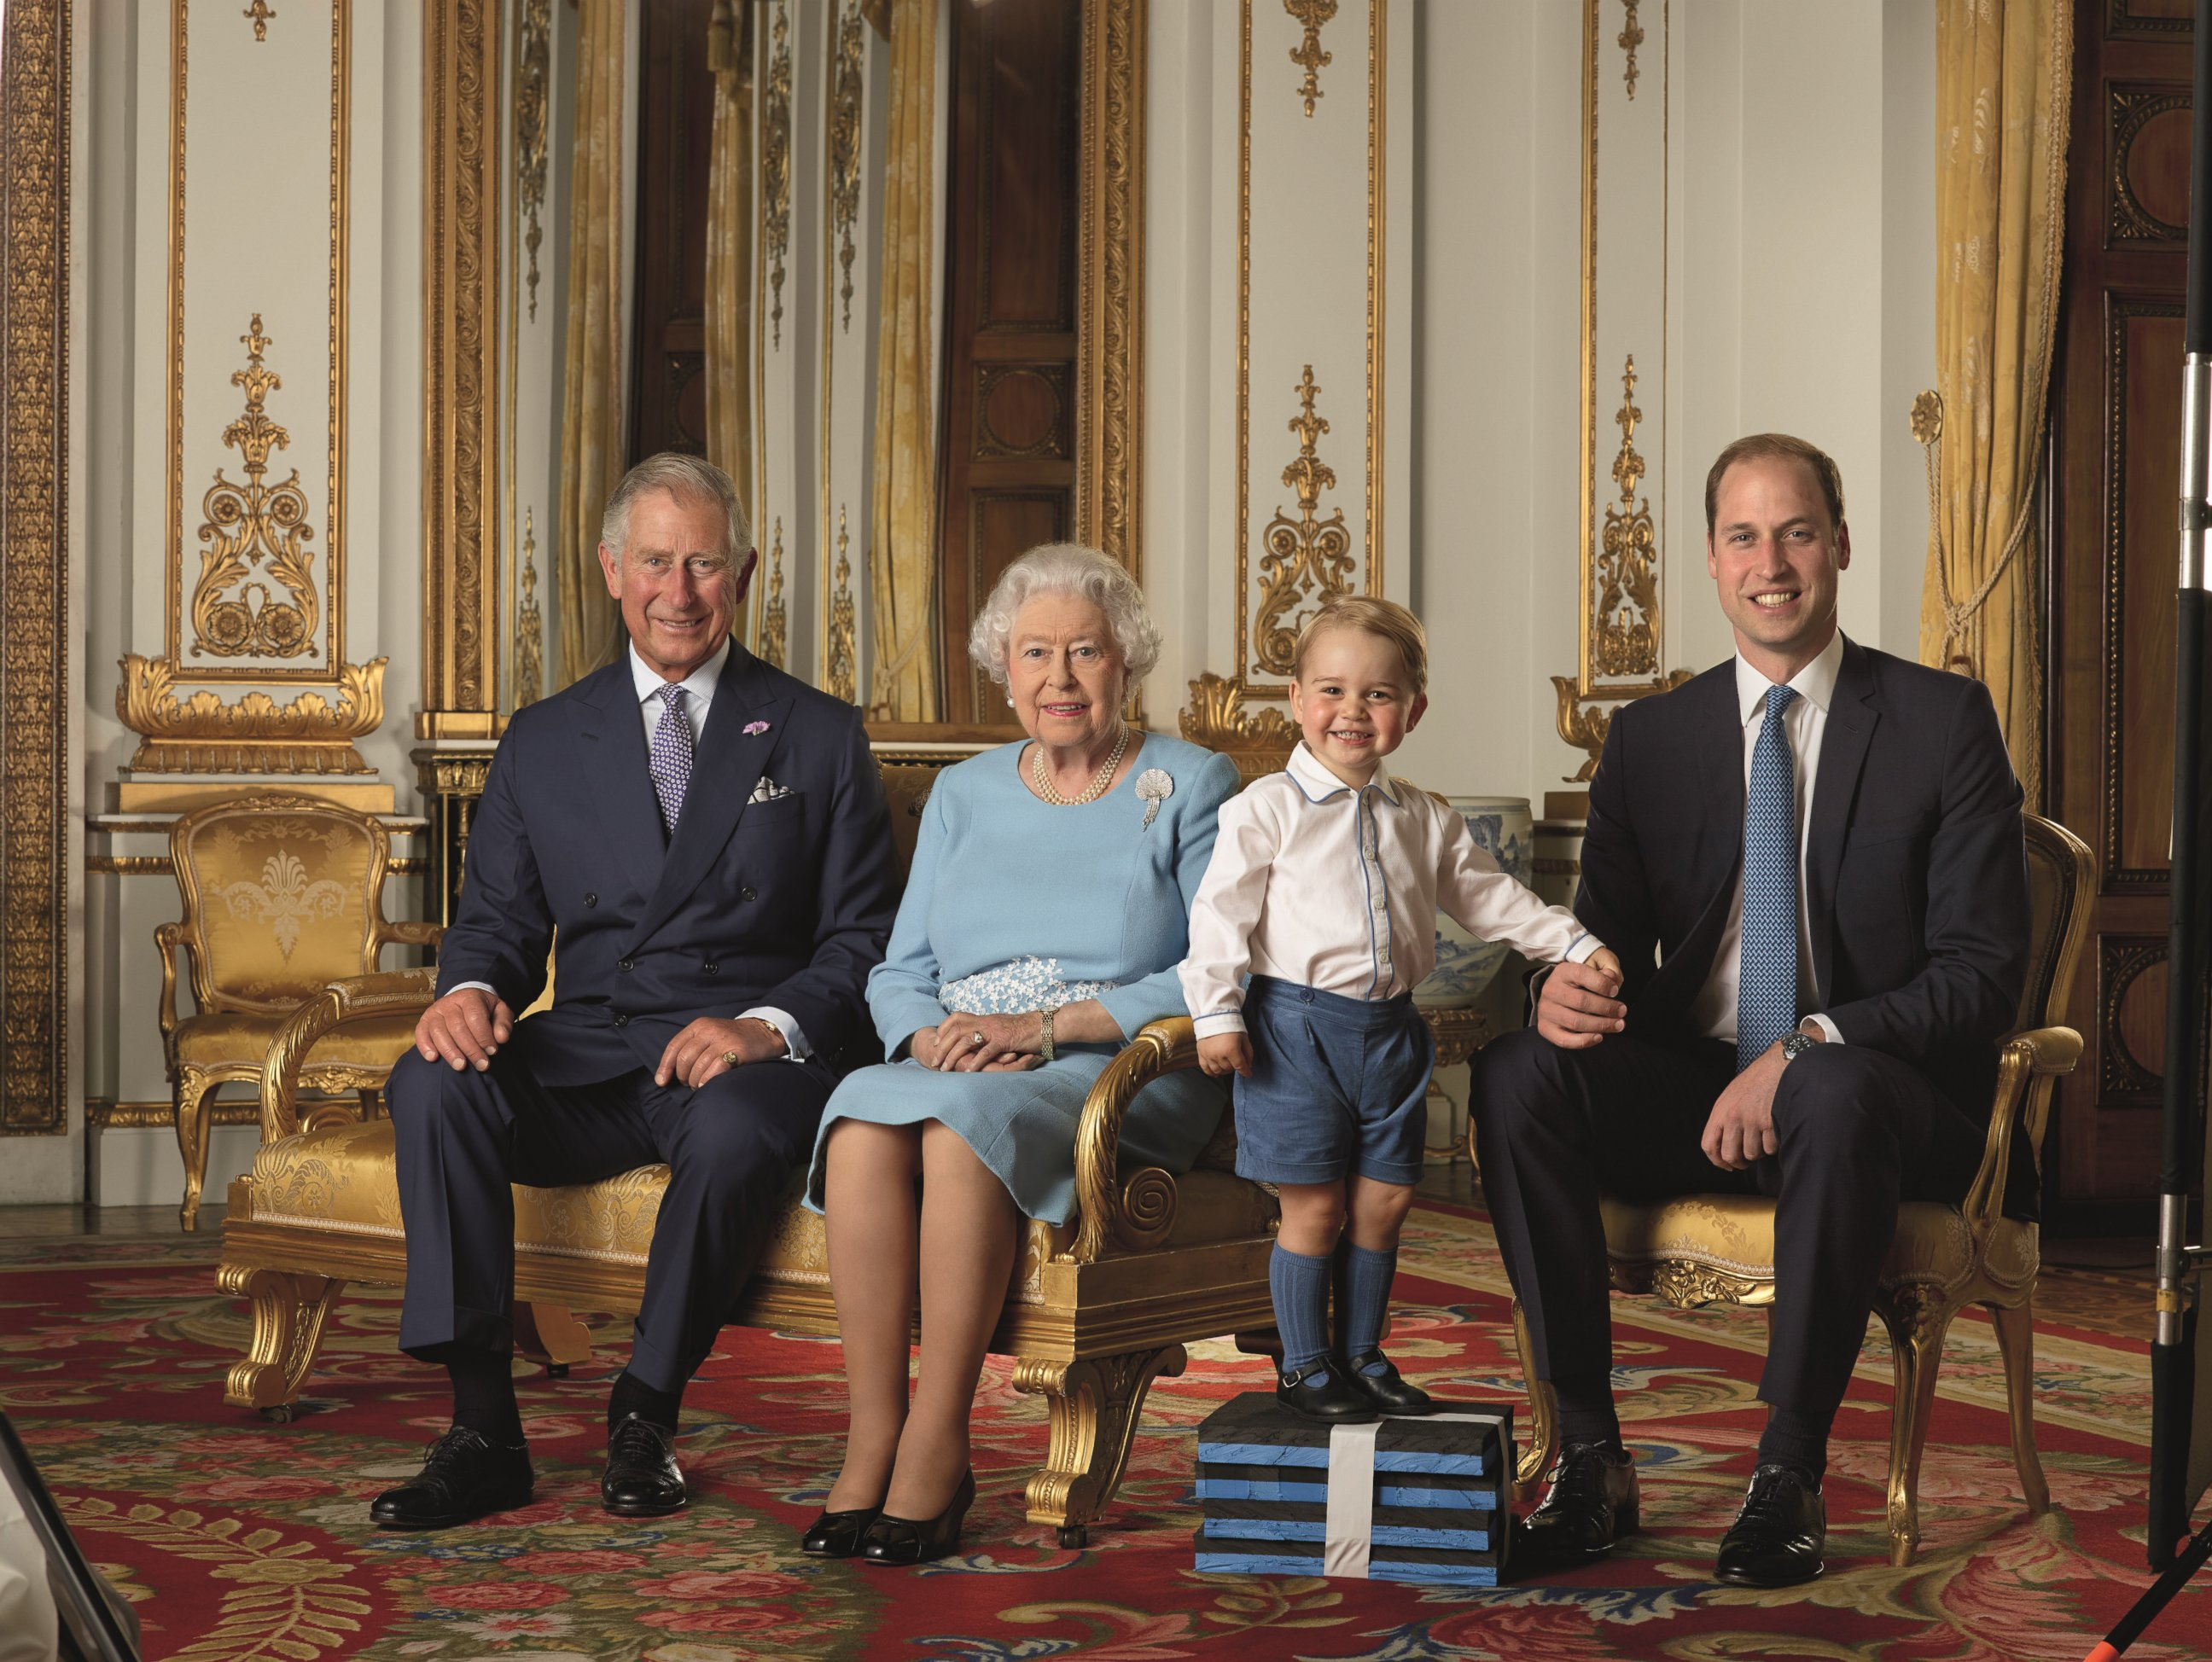 Her Majesty the Queen and Family, Year 90